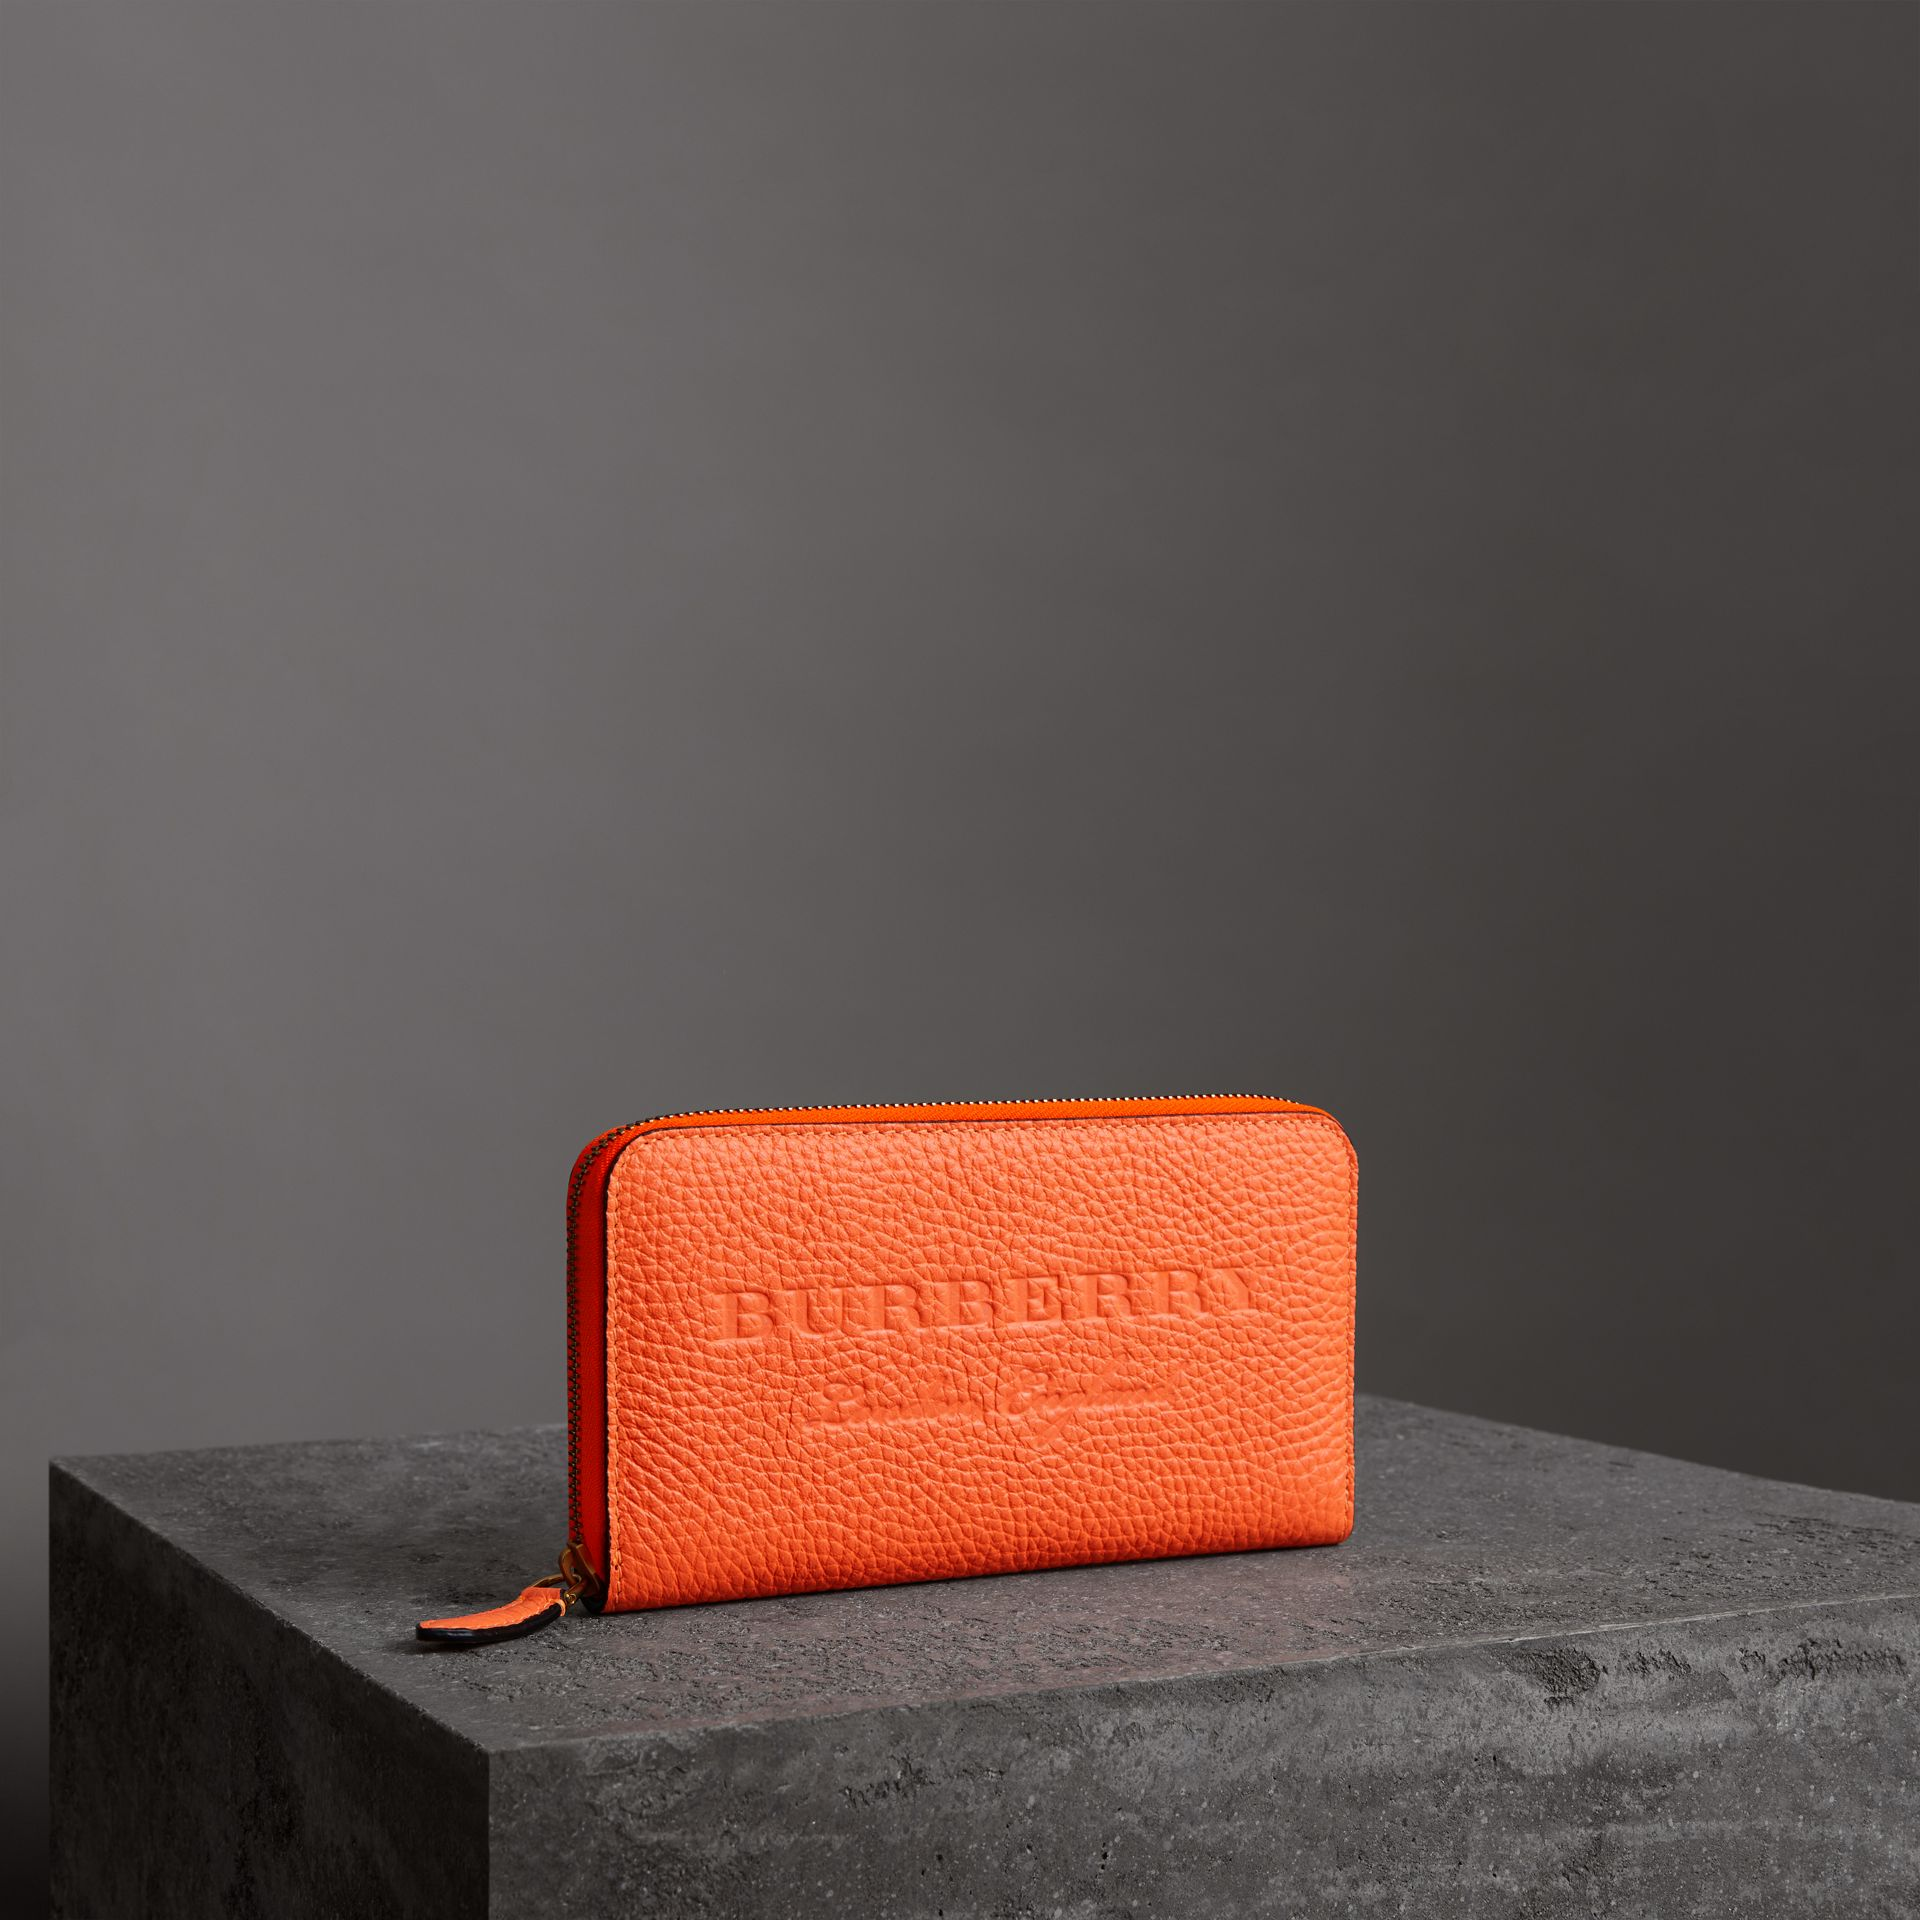 Portefeuille zippé en cuir estampé (Orange Vif) - Femme | Burberry - photo de la galerie 0